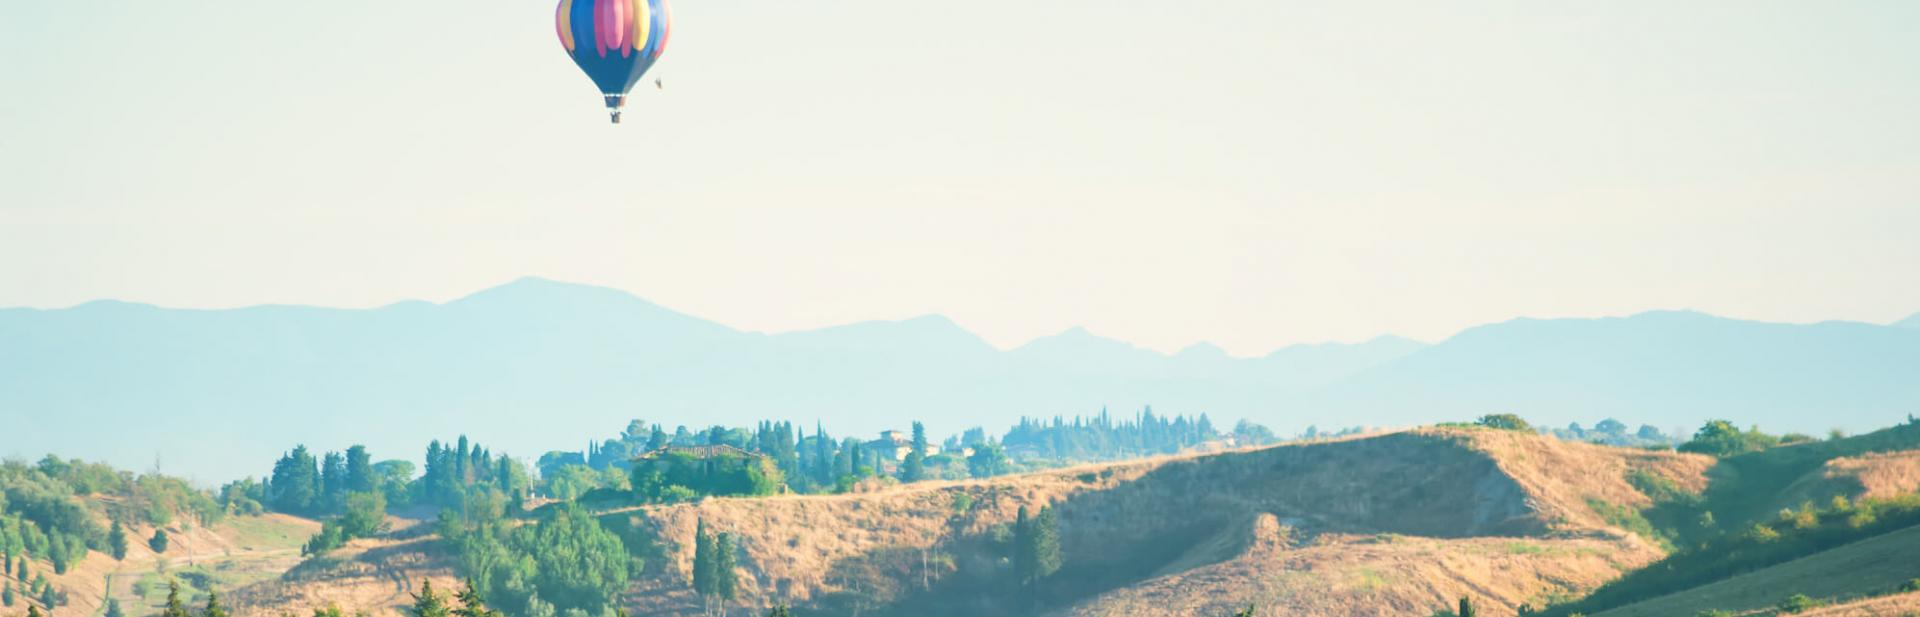 A graceful countryside with a hot air balloon floating over it.